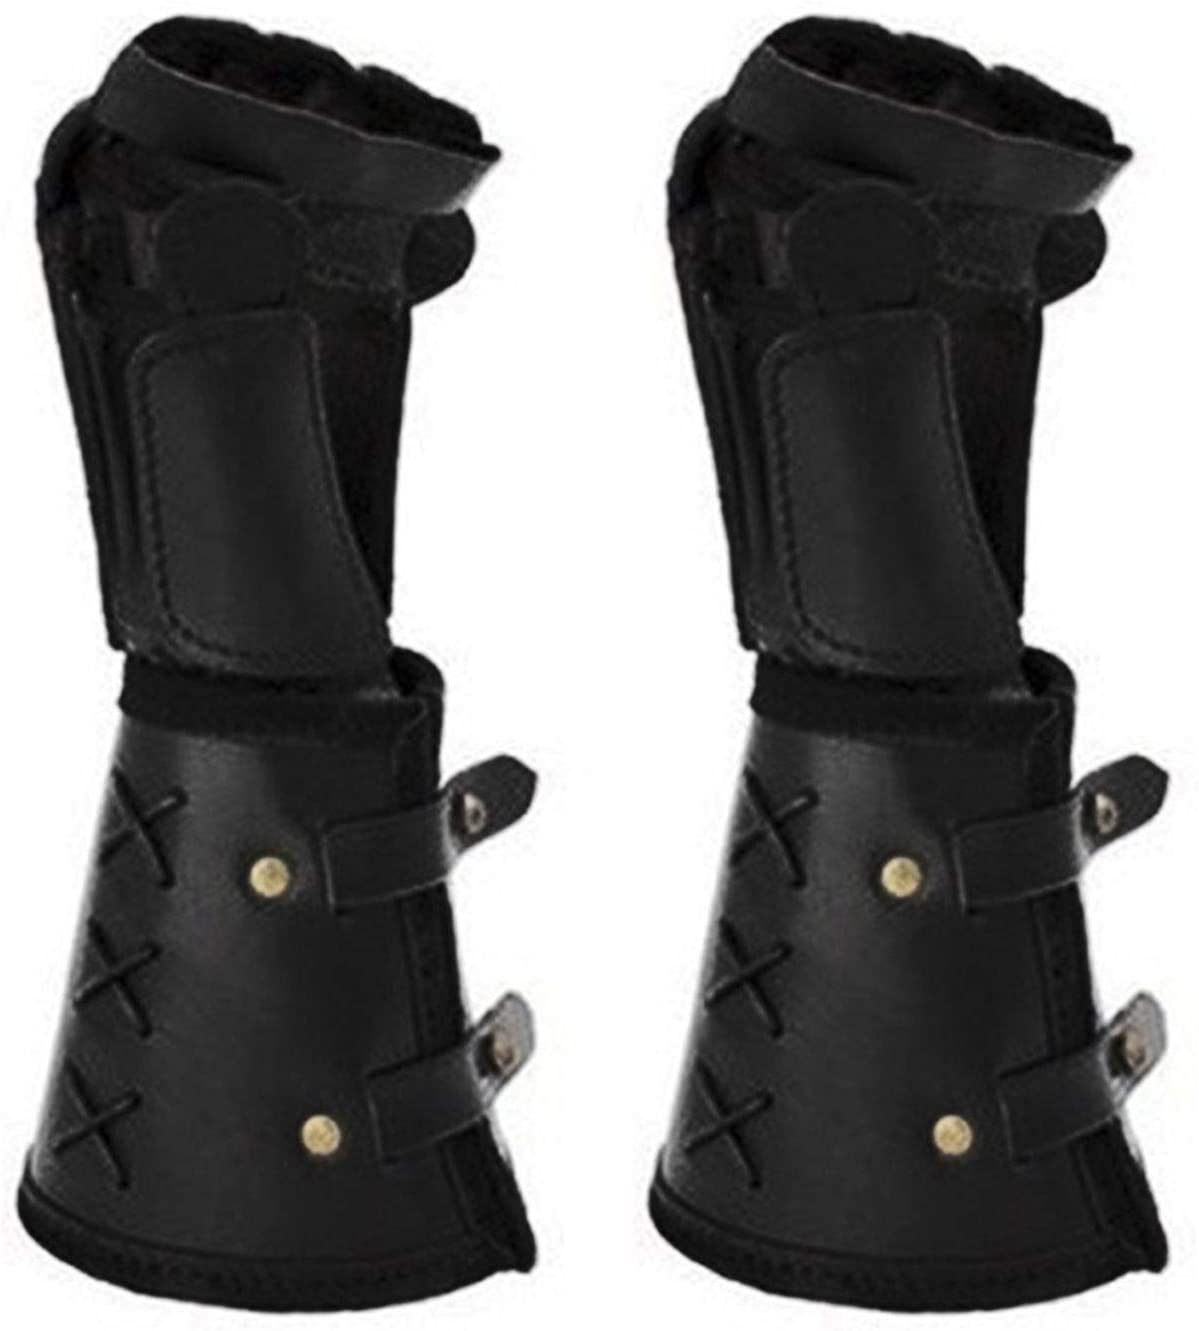 Obobb Leather Bracers,Leather ArmorGauntlet Wristband Medieval Vambrace Arm Cuff Armor Leather Arm Bands